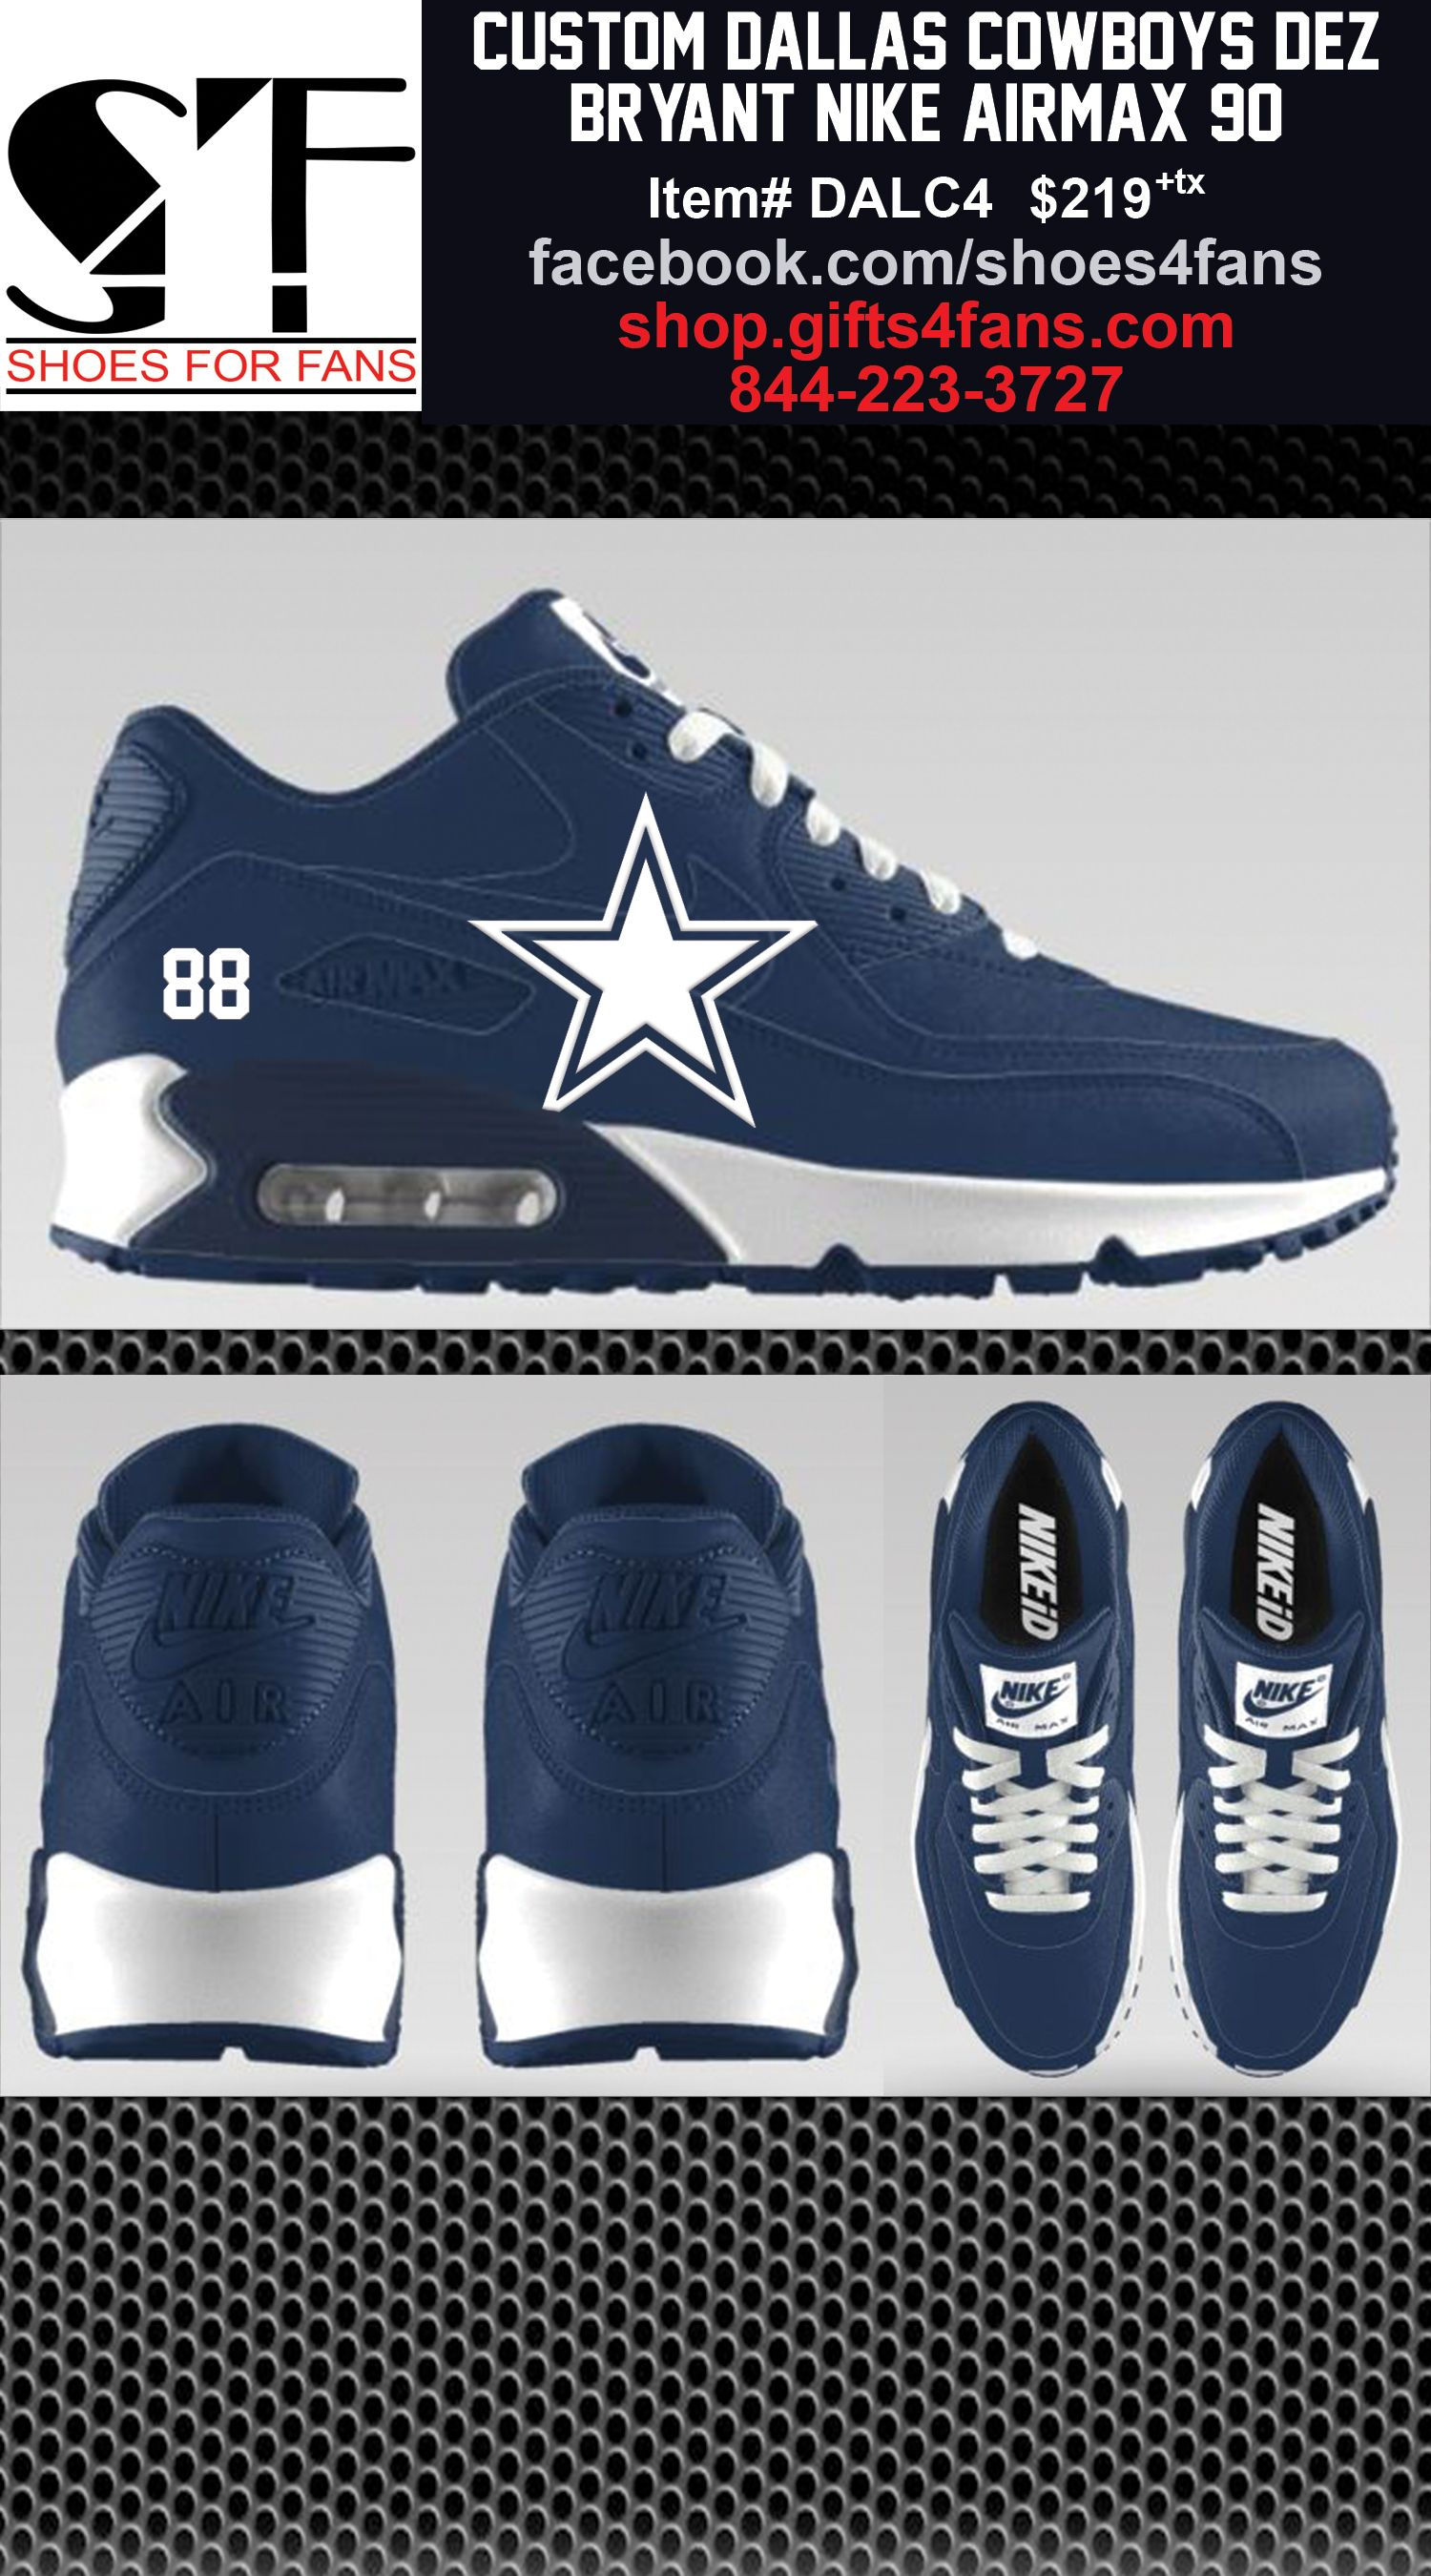 cheap for discount dd262 c9bdb Custom Dallas Cowboys Dez Bryant Nike AirMax 90 with white star on the side  and 88 on the back side. go to shop.gifts4fans.com